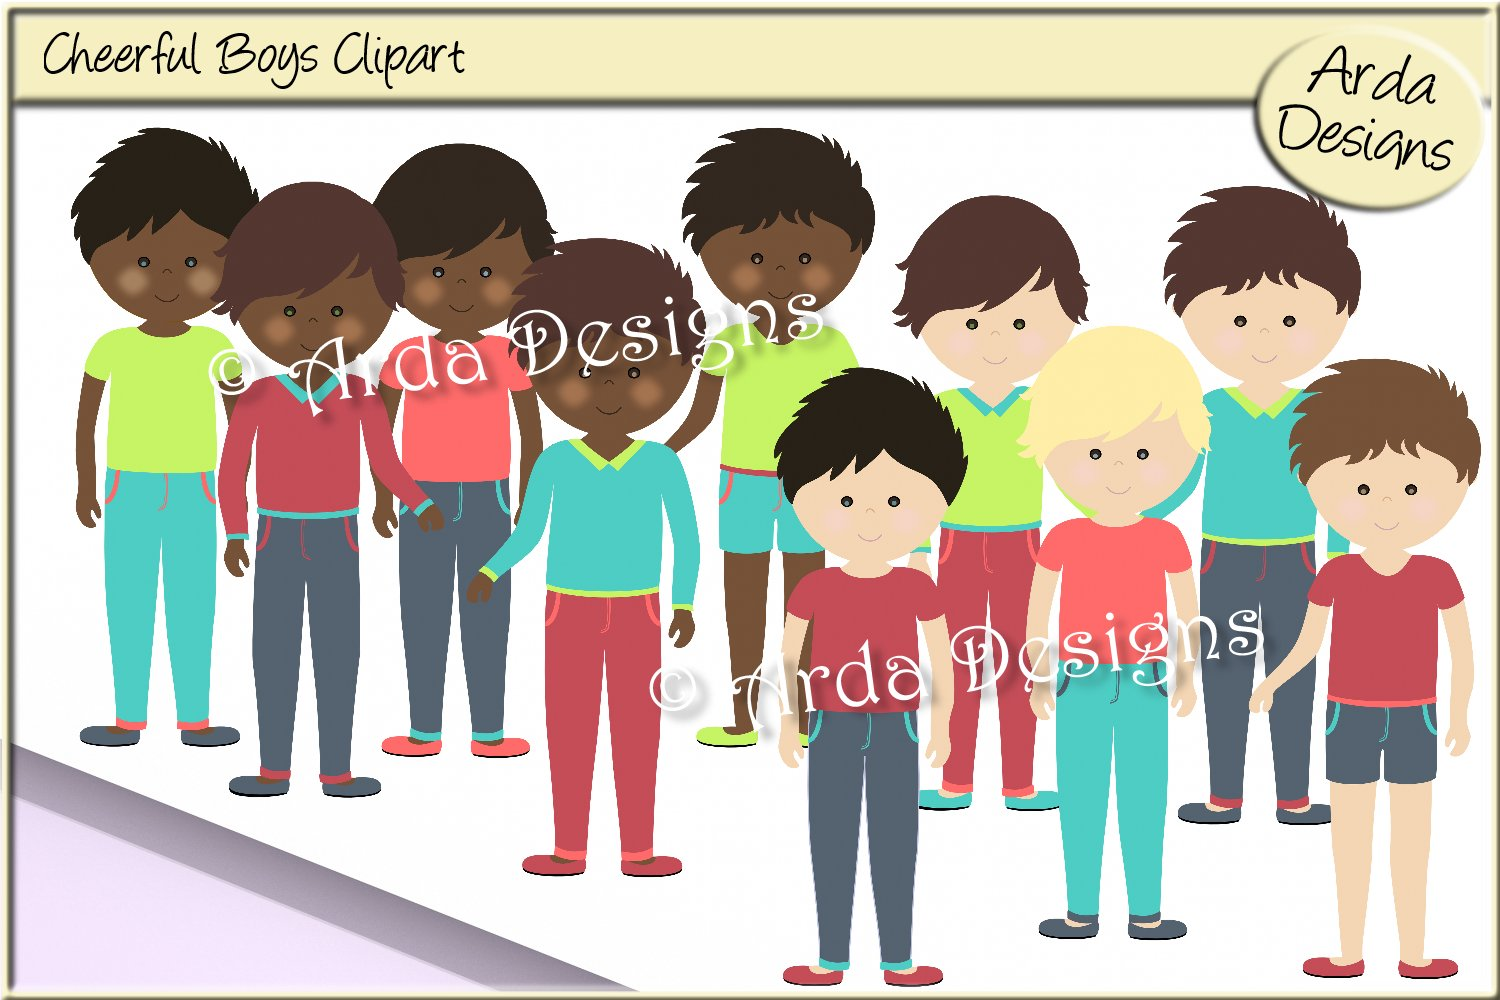 Cheerful Boys Clipart.